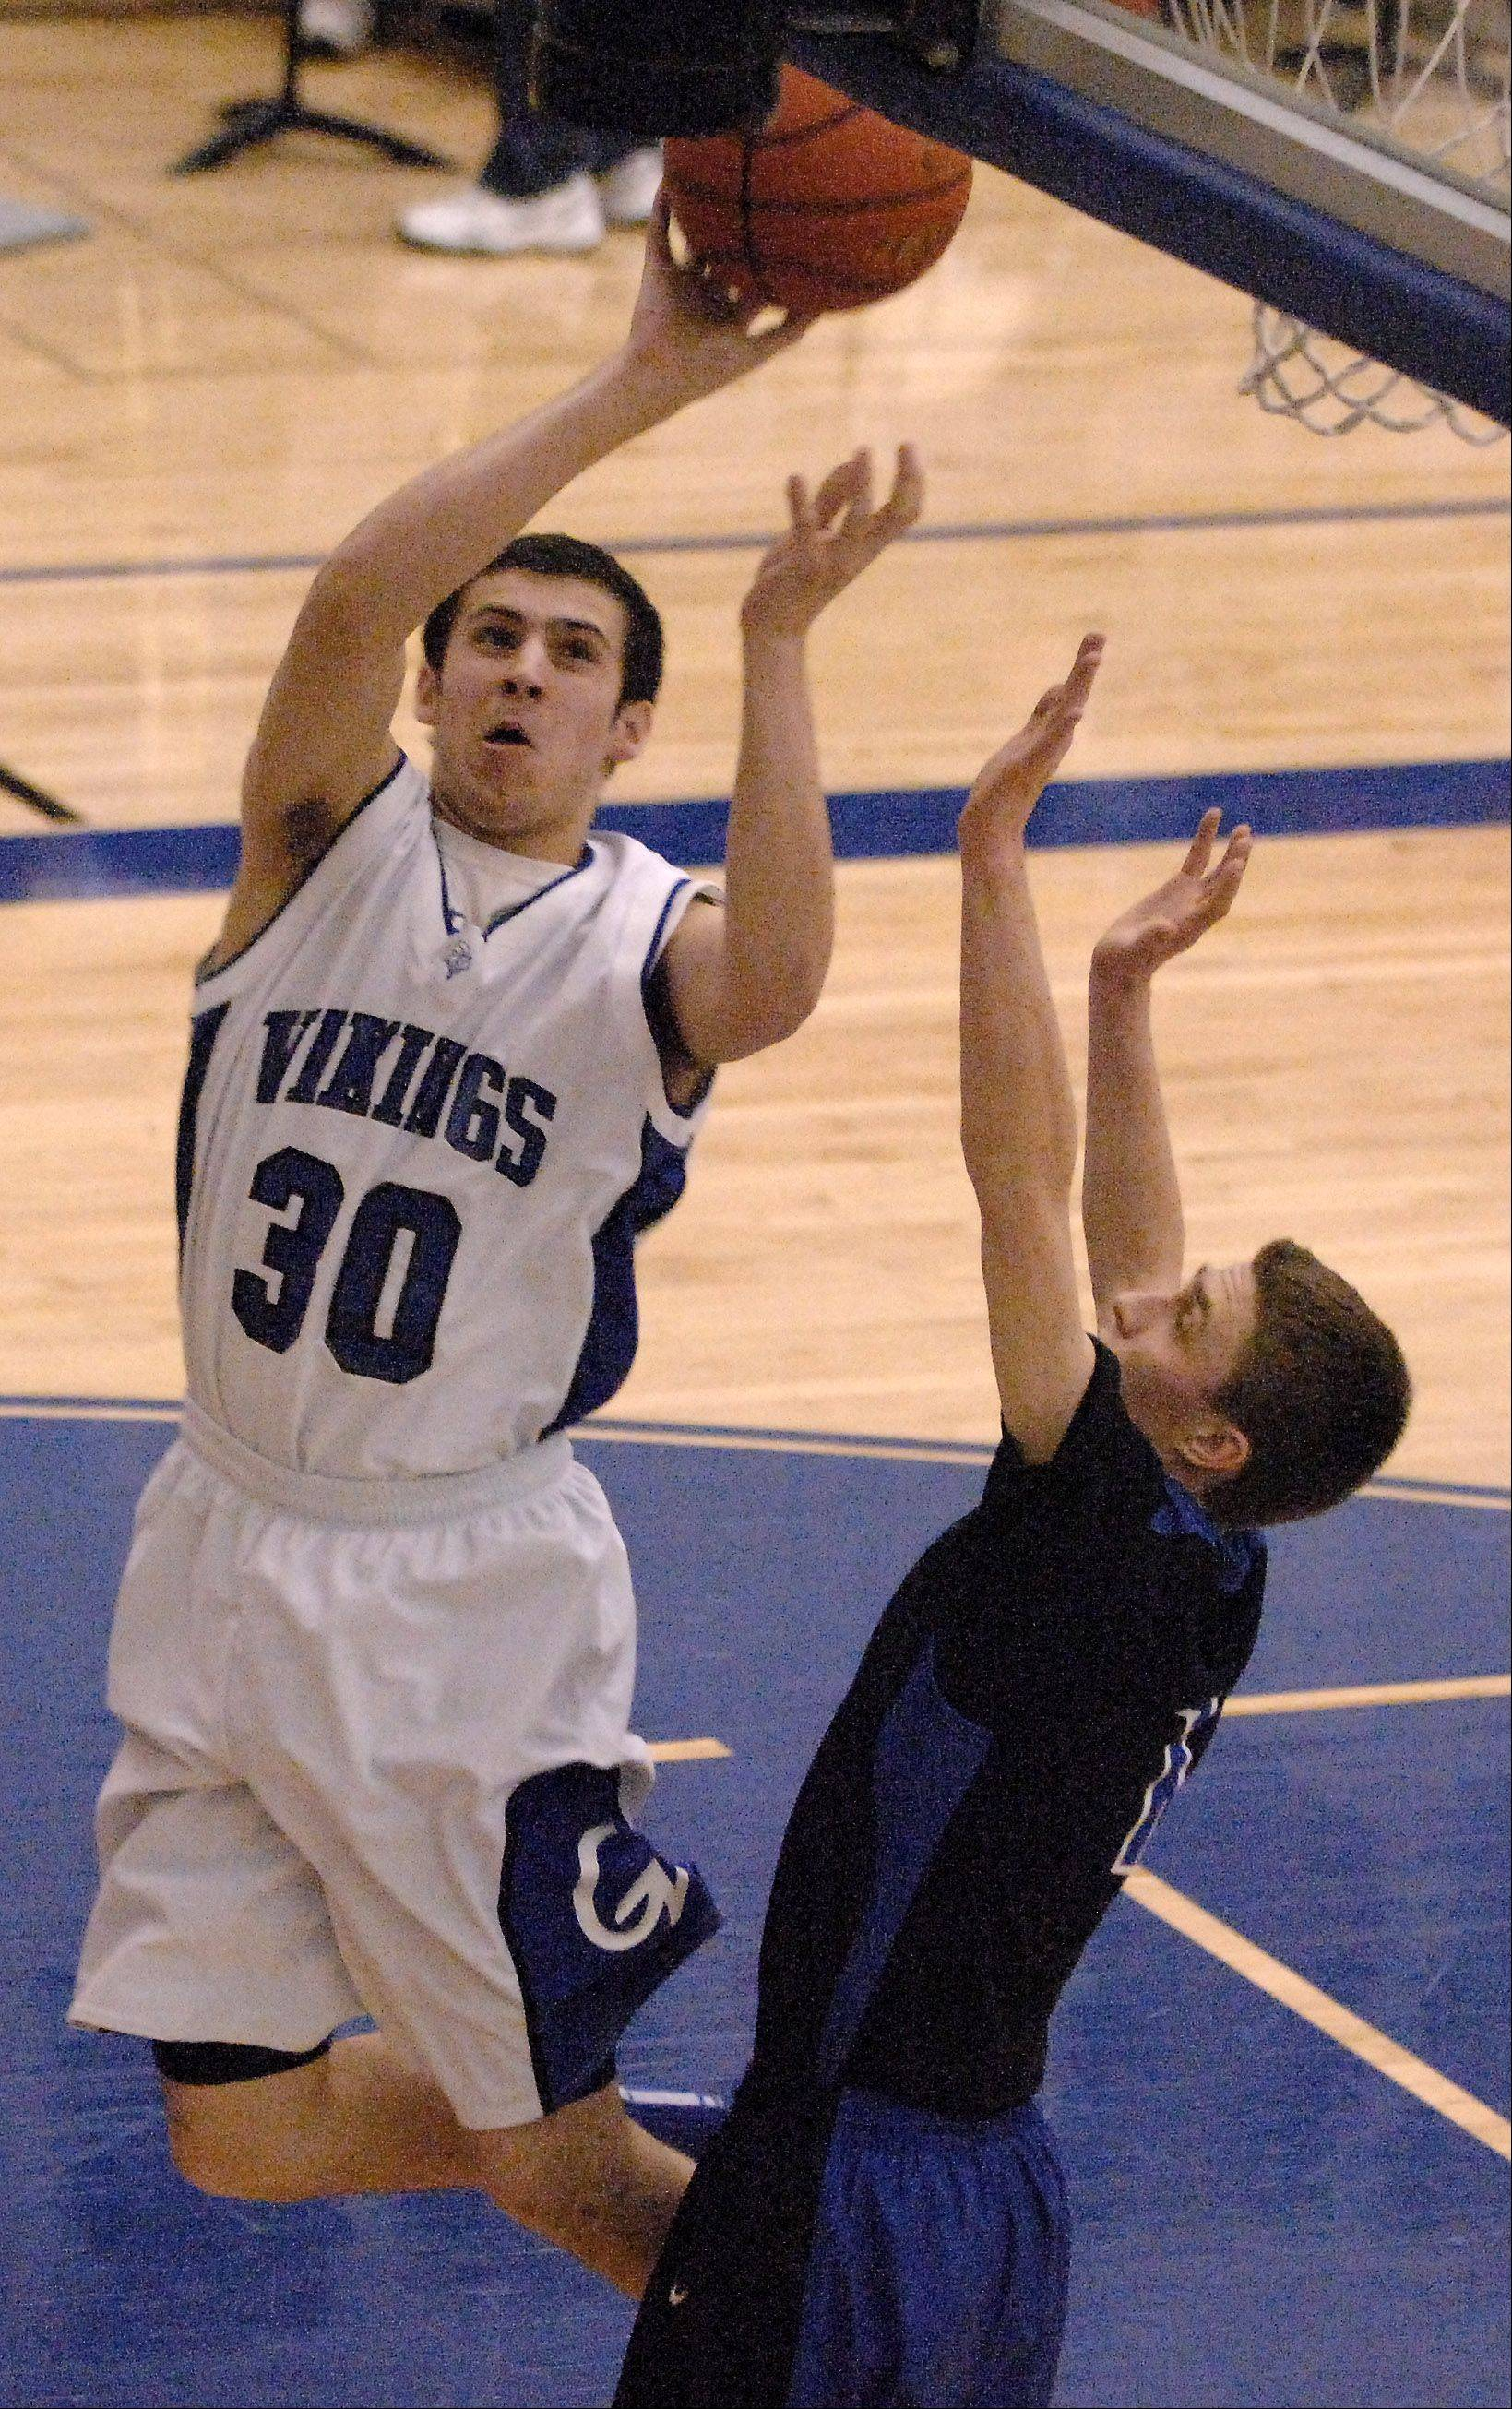 Geneva's Chris Parrilli scores and is fouled against St. Charles North during Friday's game in Geneva.